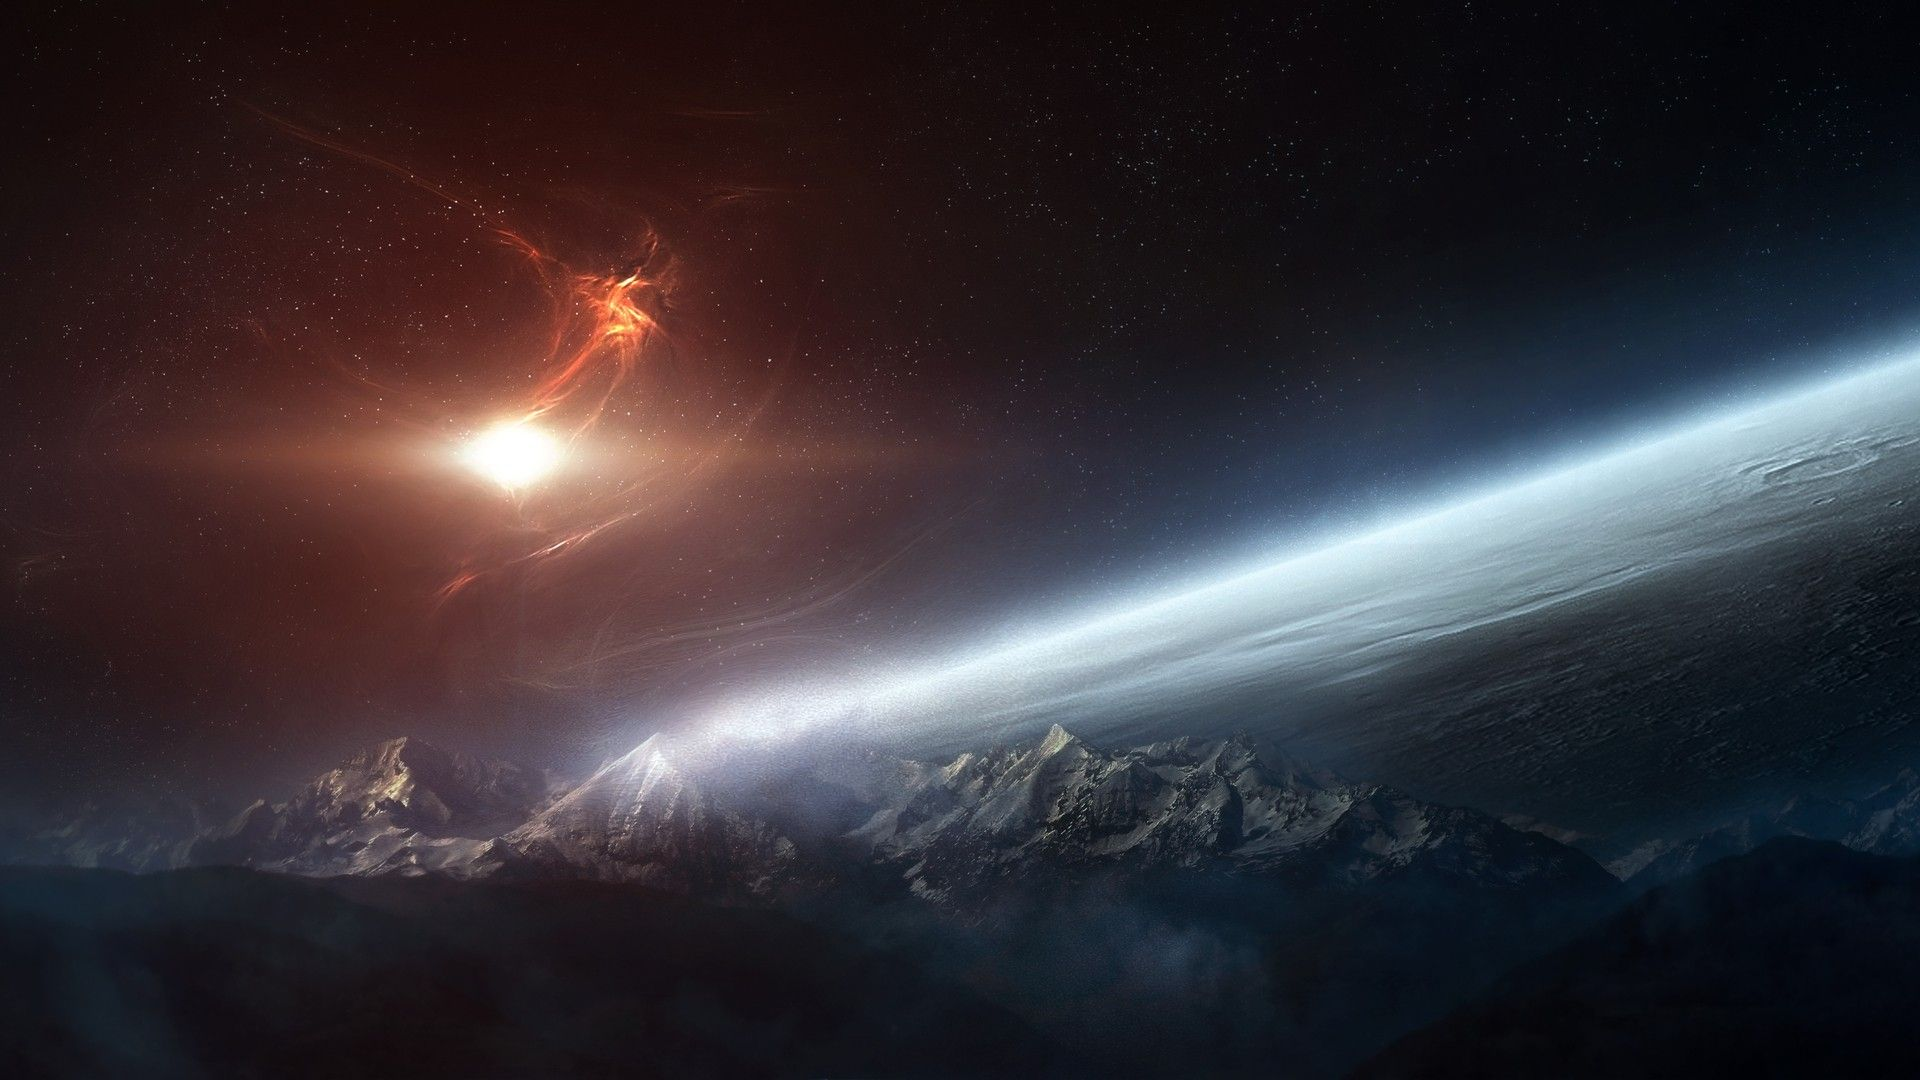 Outer Space HD Wallpaper FullHDWpp